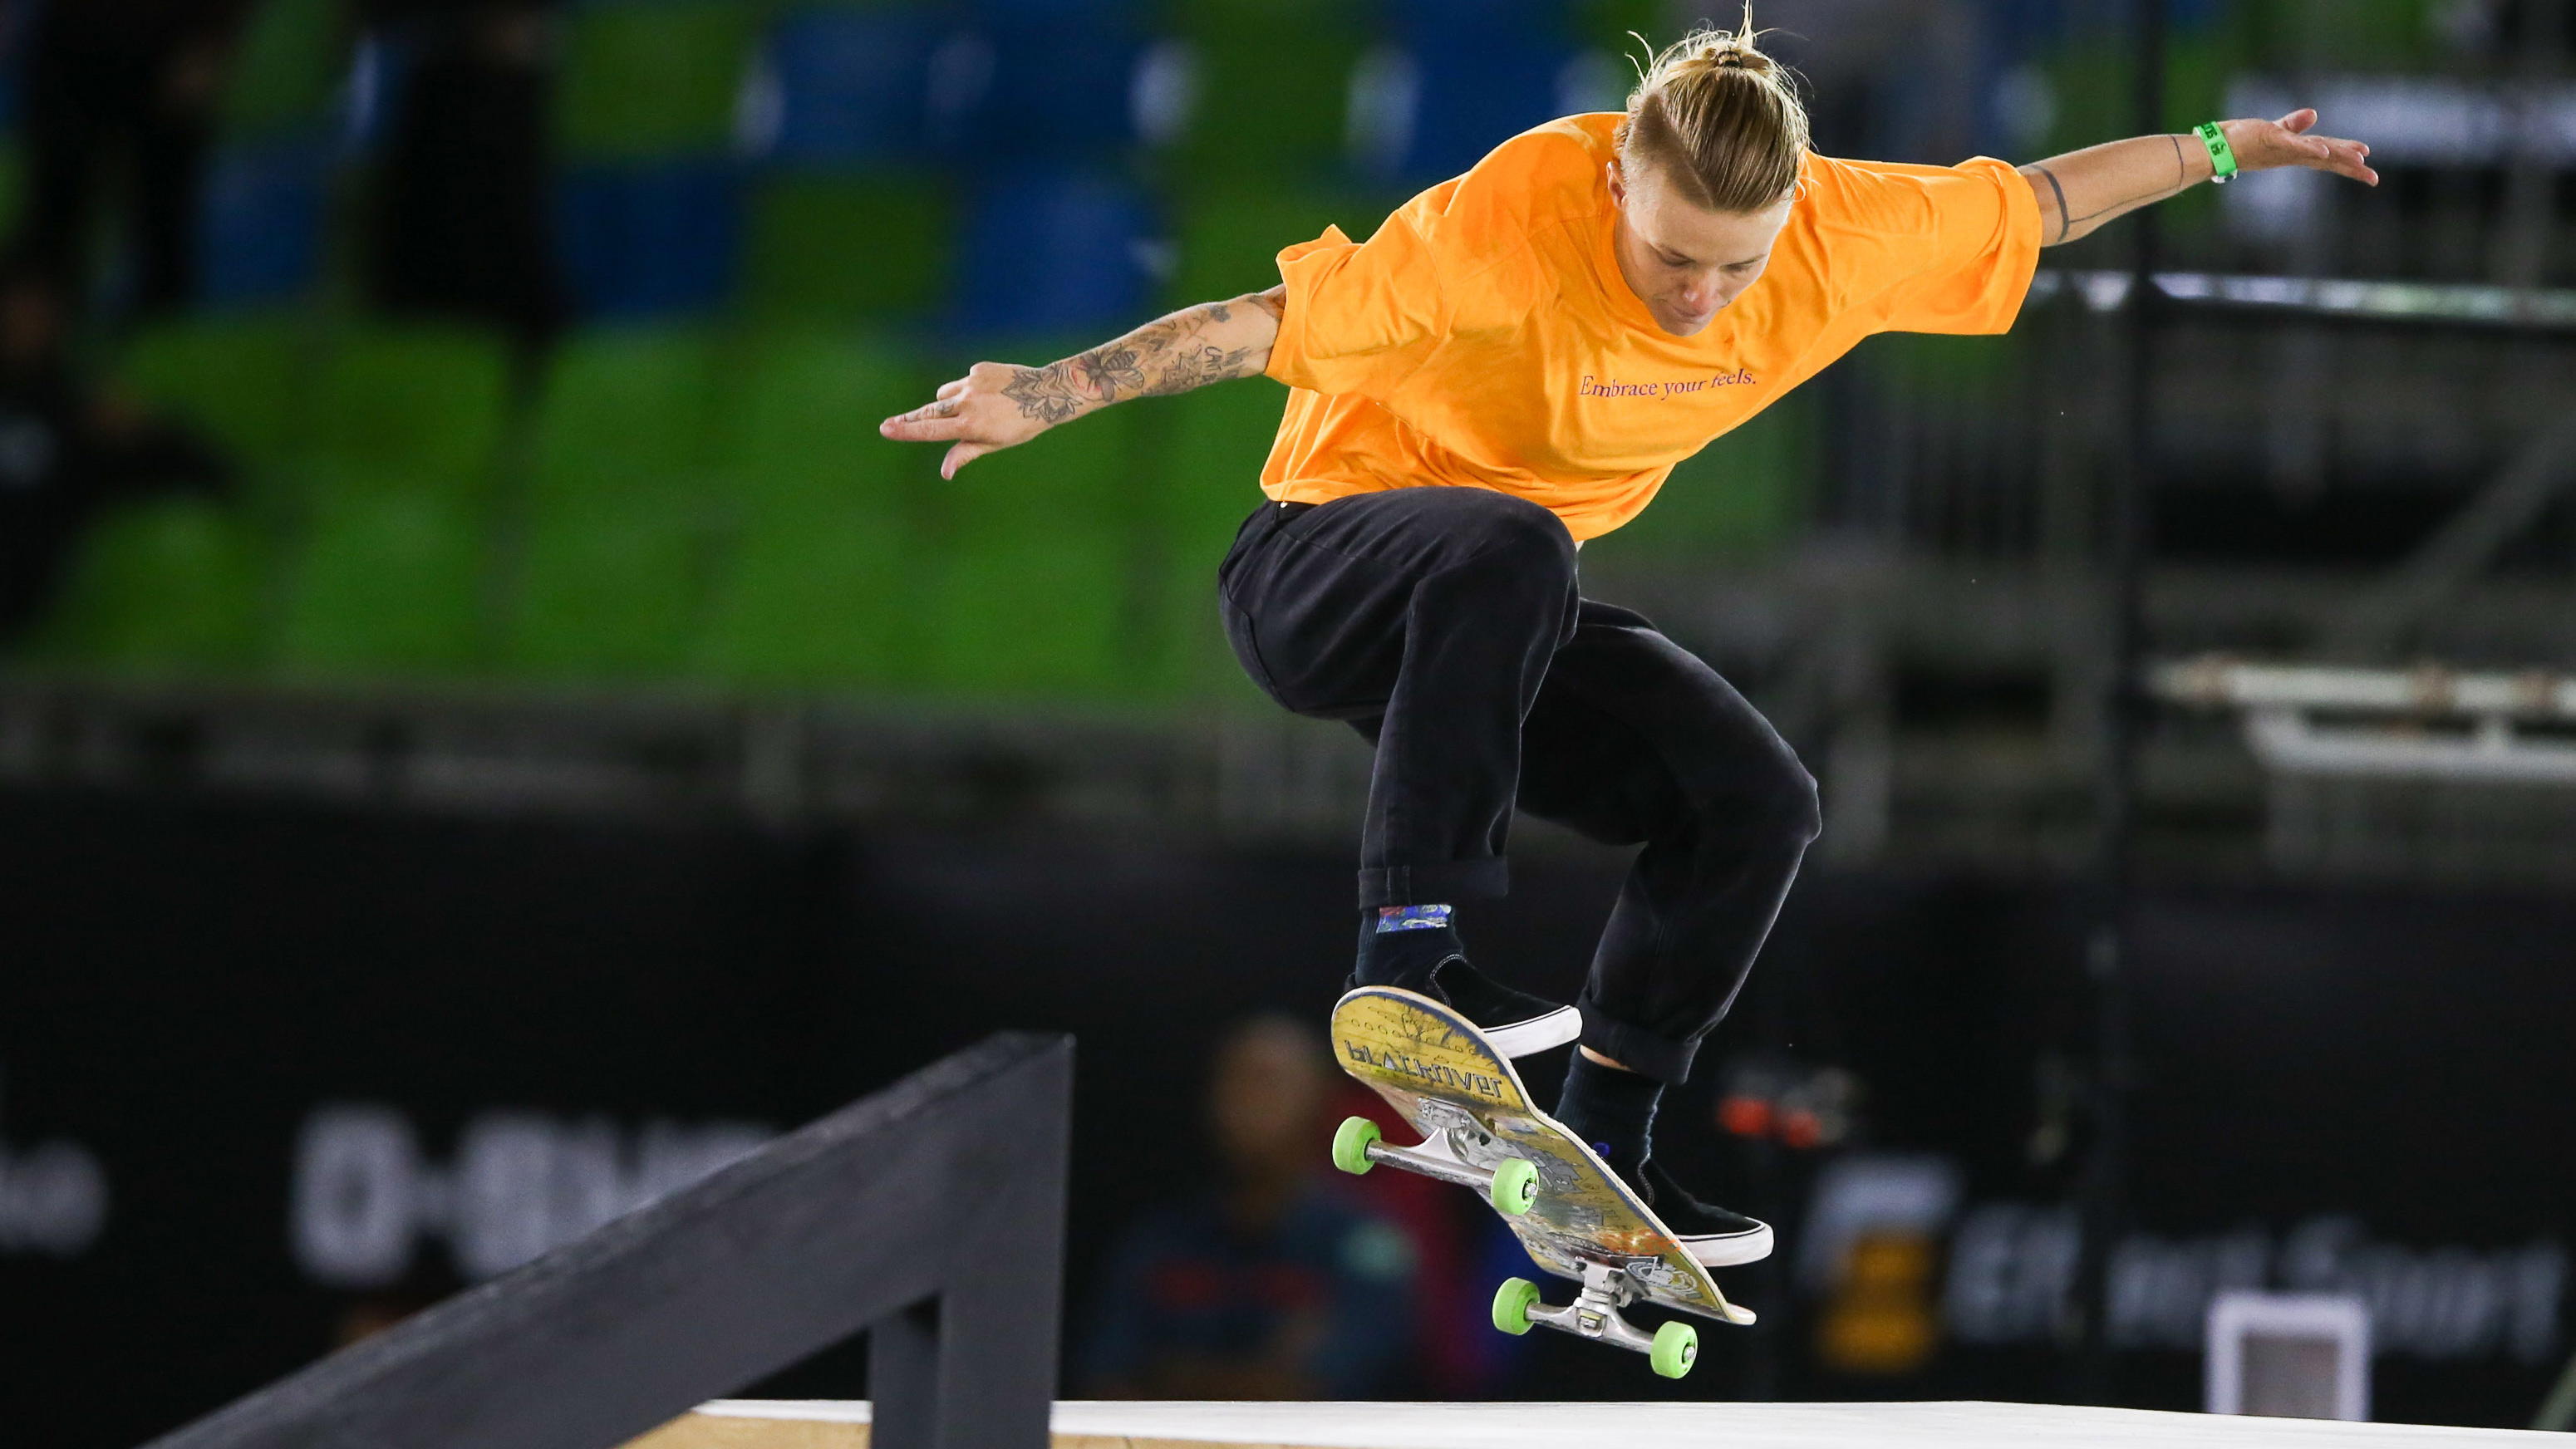 Candy Jacobs of Netherlands competes during the WS/SLS 2019 World Championship at Parque Anhembi on September 22, 2019, in Sao Paulo, Brazil.